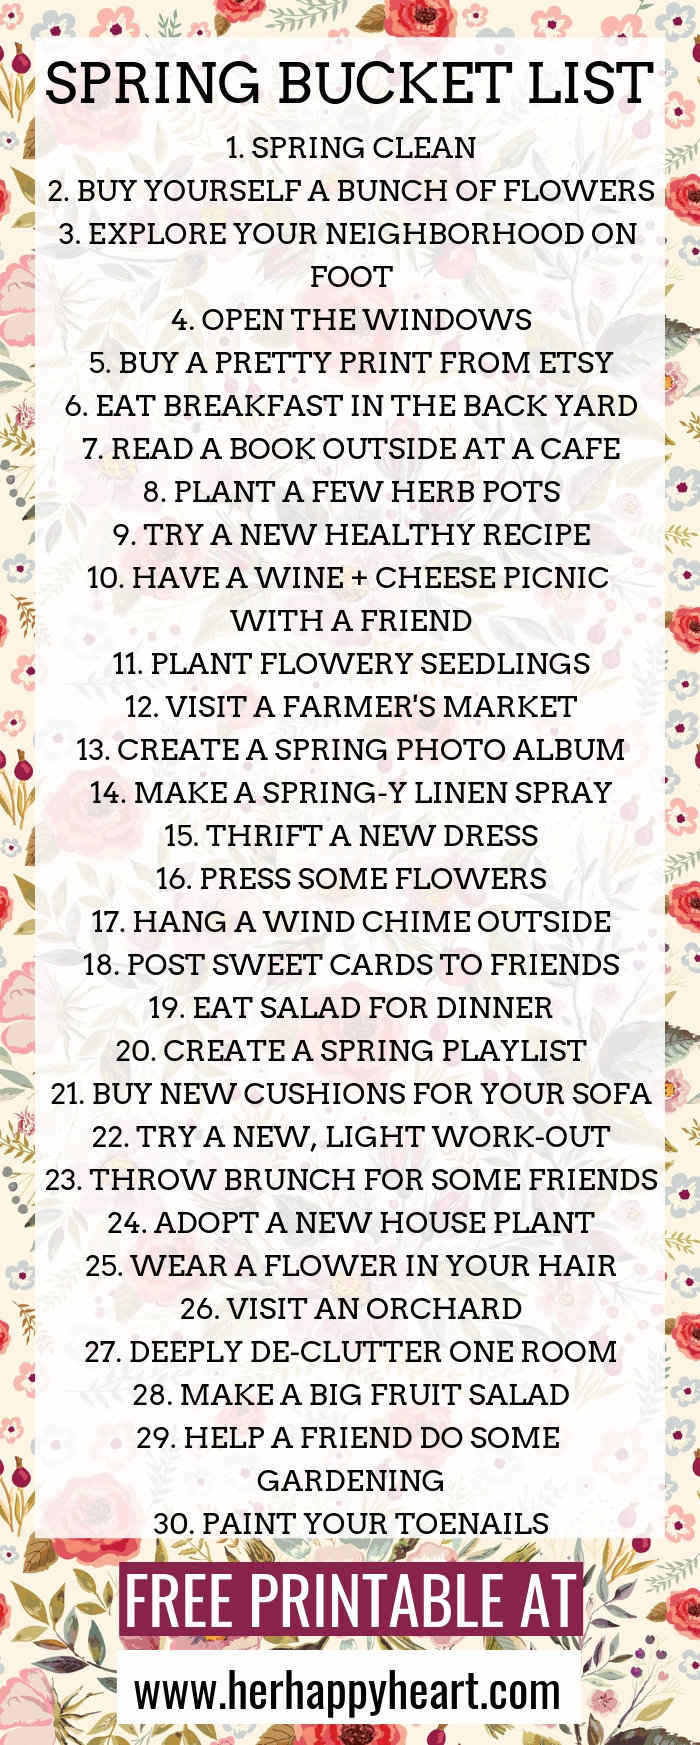 Spring bucket list | Spring things to do with friends, family, boyfriend and husband | Things to do alone at home in Spring | Fun awesome Spring activities